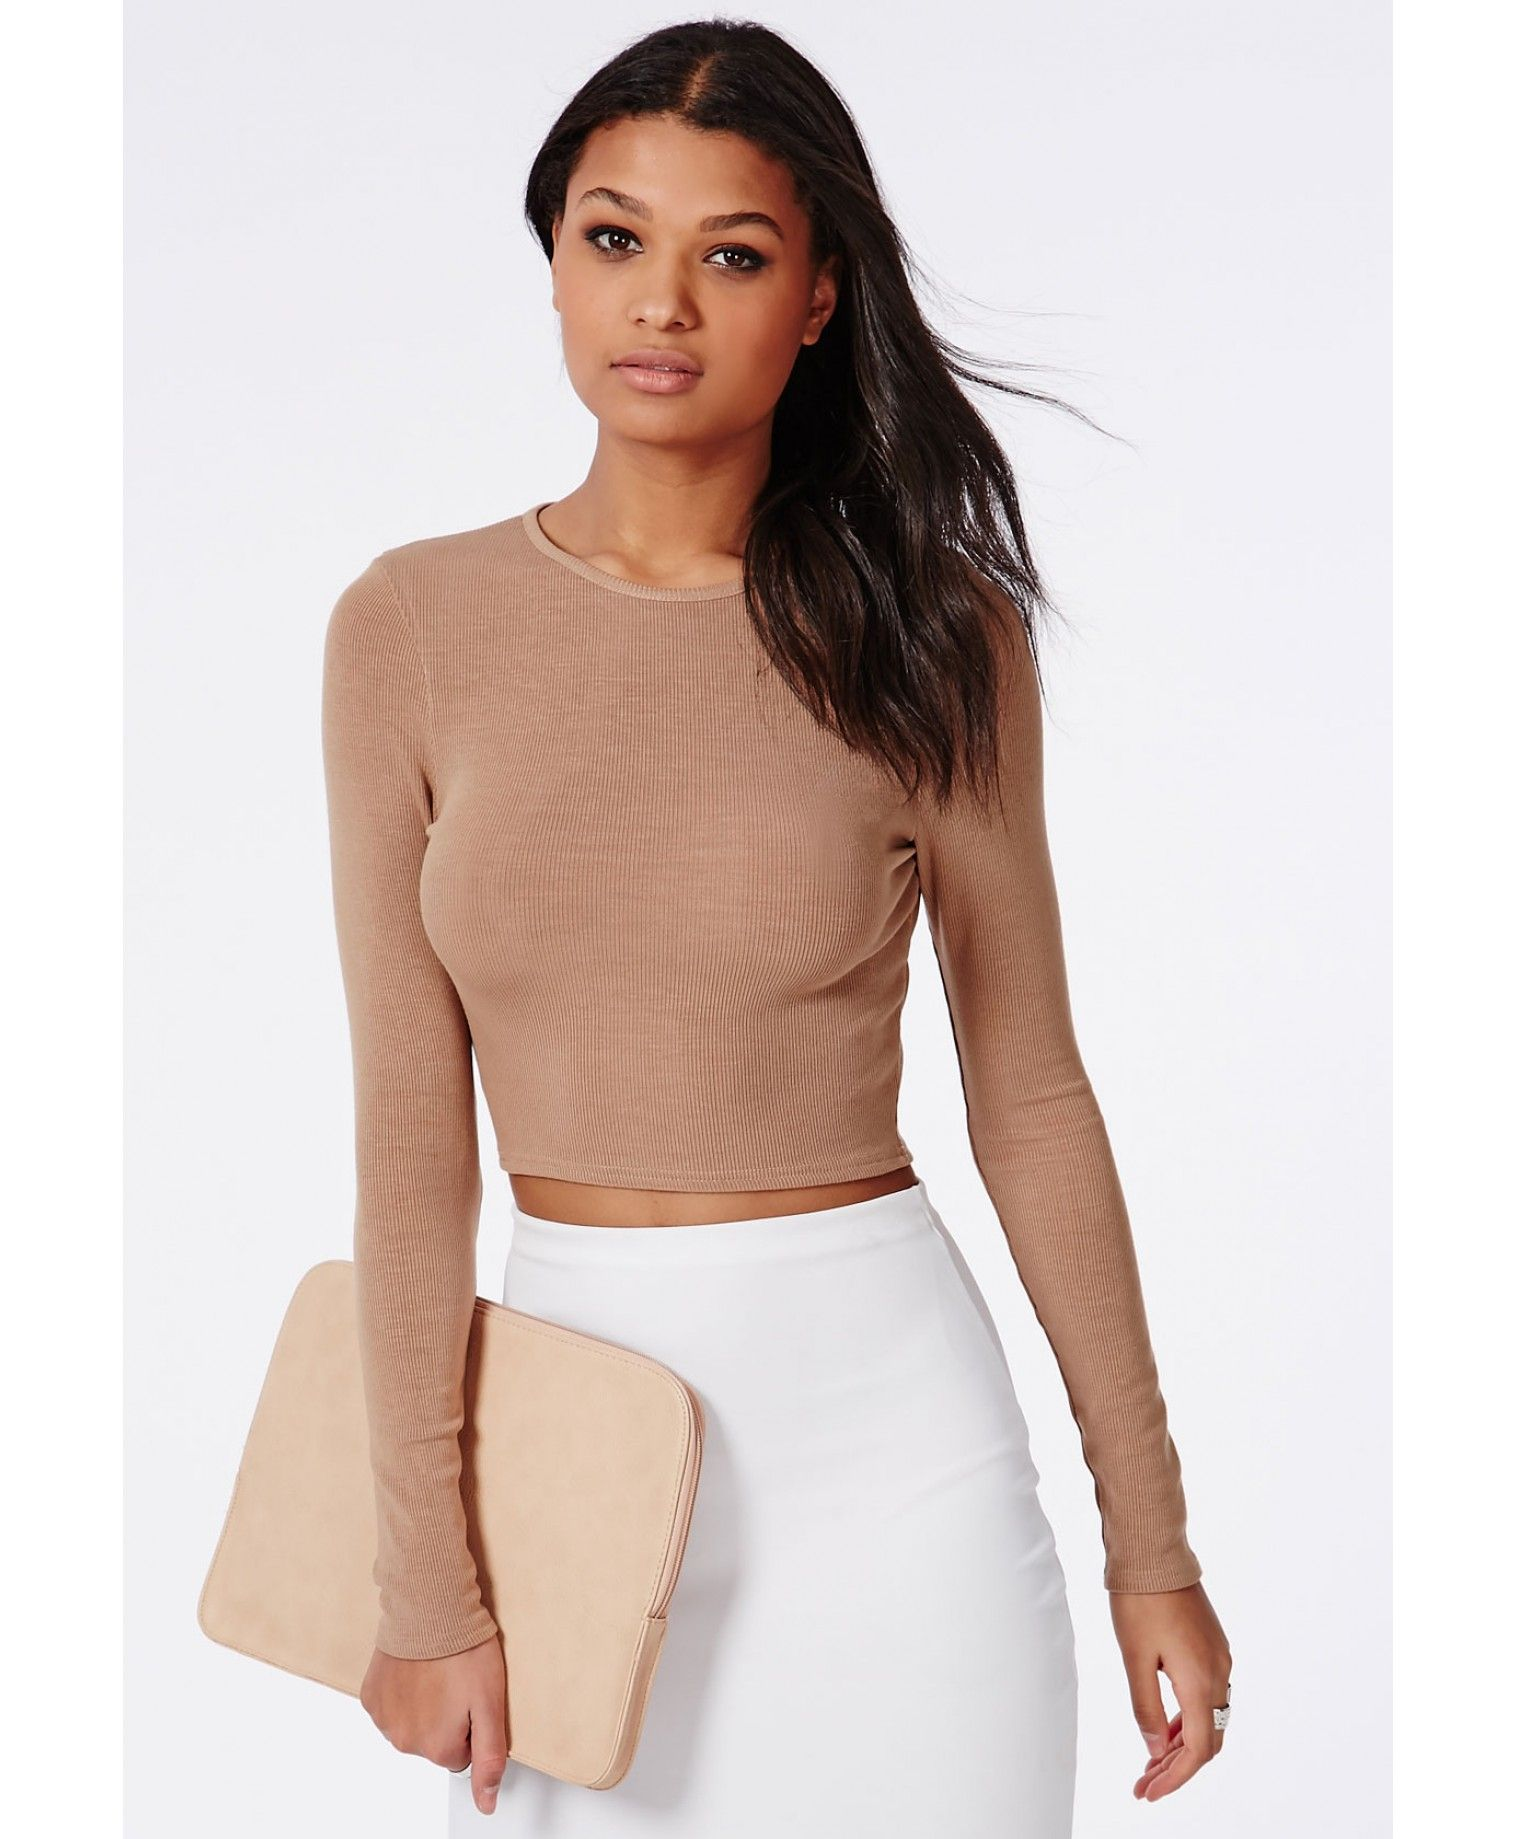 b0551c8e791 Ribbed Long Sleeve Crop Top Camel - Tops - Long Sleeve Tops - Missguided